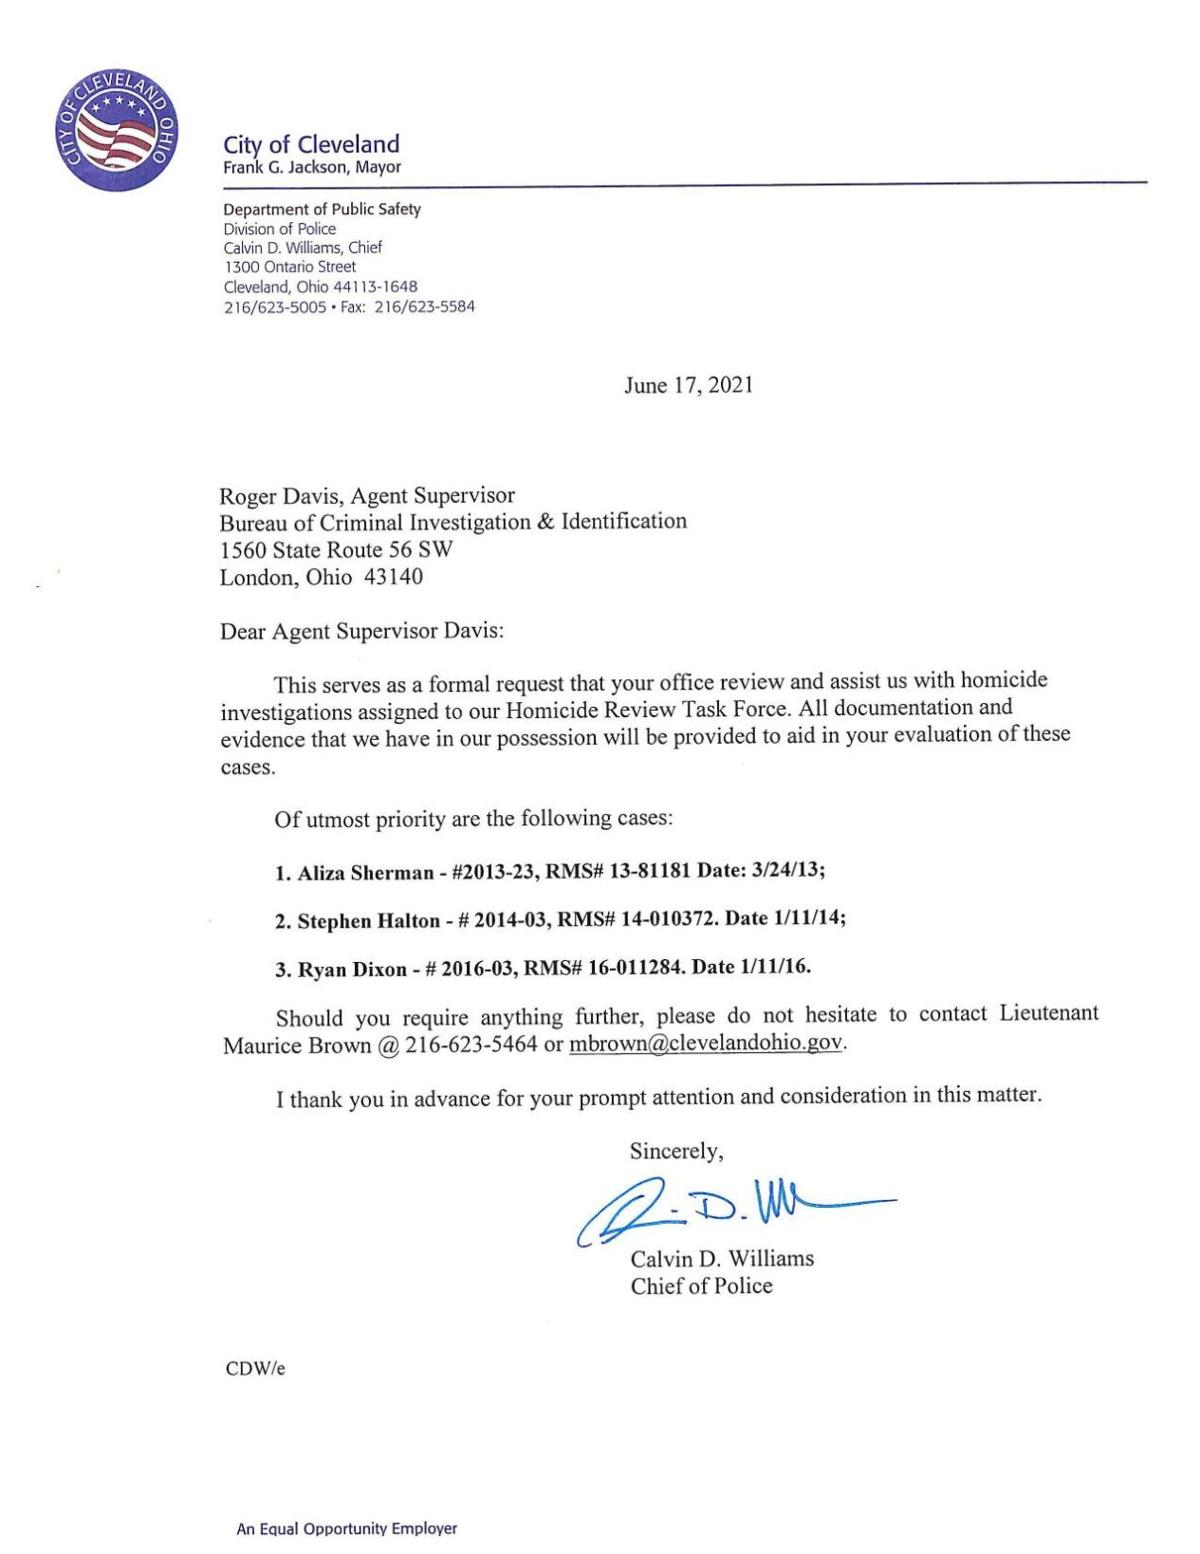 READ: Letter from Cleveland Chief of Police Calvin Williams to the Ohio Bureau of Criminal Investigation